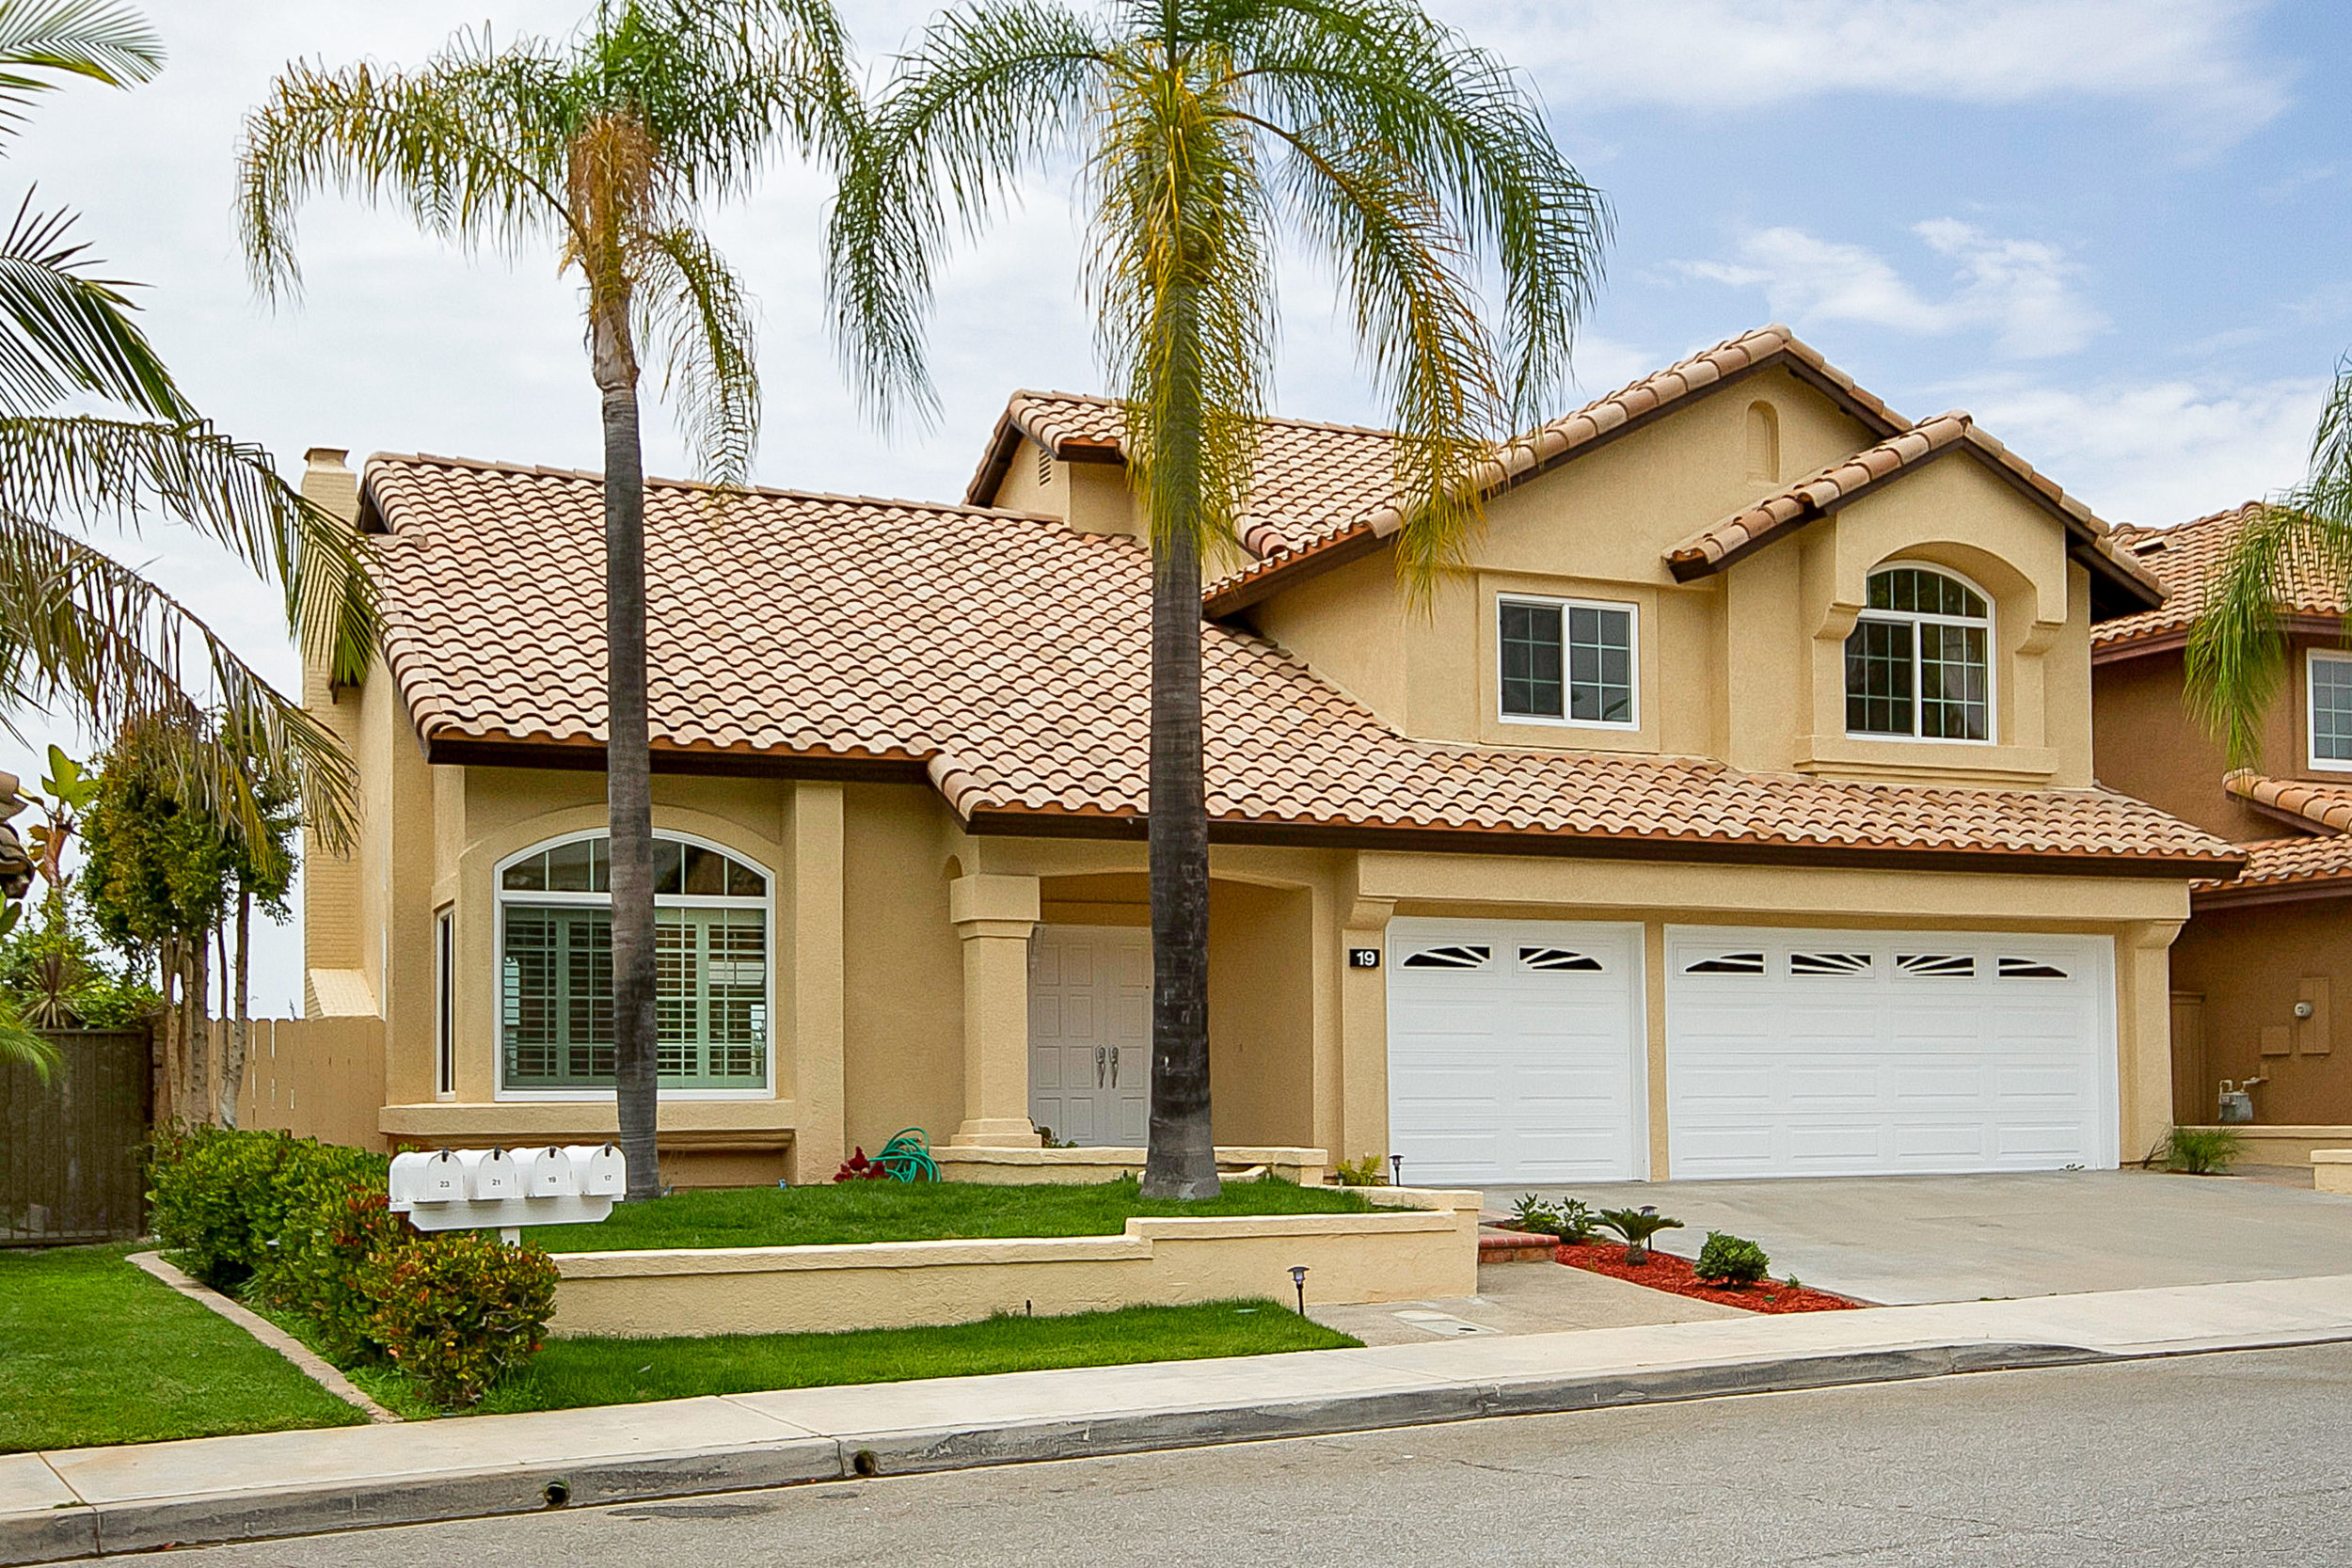 SOLD FOR $1,079,000   Aliso Viejo  4 BR | 3 BTH | 2,415 SQ/FT